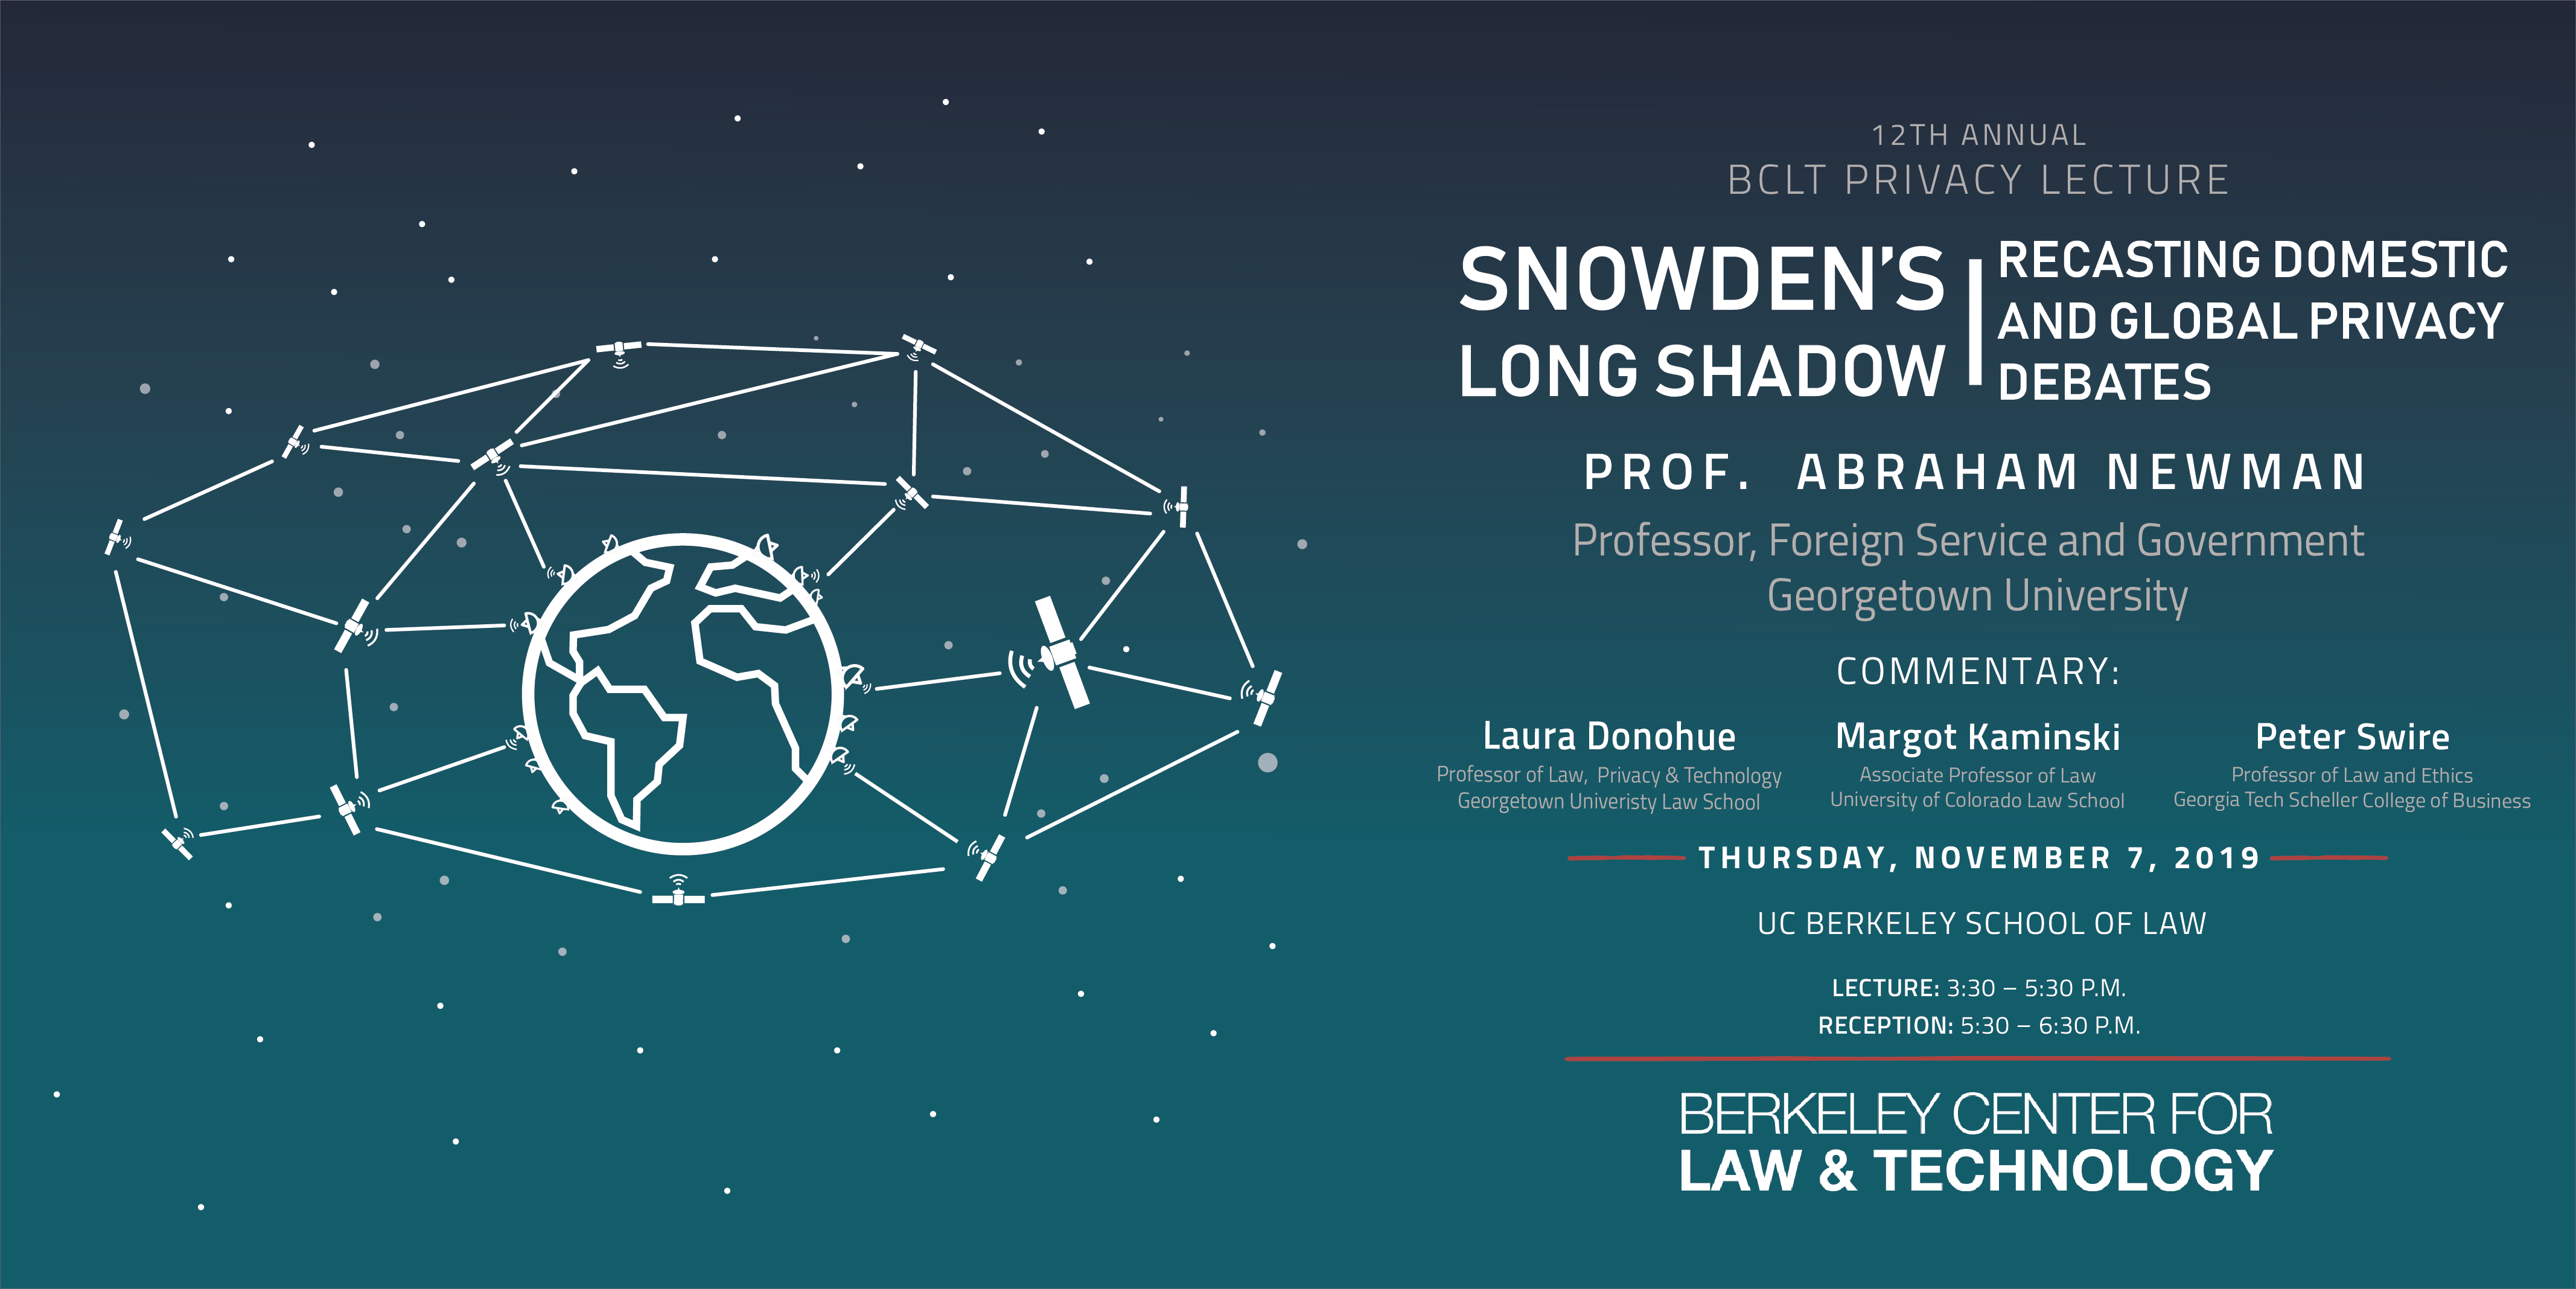 2019 Bclt Privacy Lecture | Berkeley Law for Uc Berkeley Academic Calendar